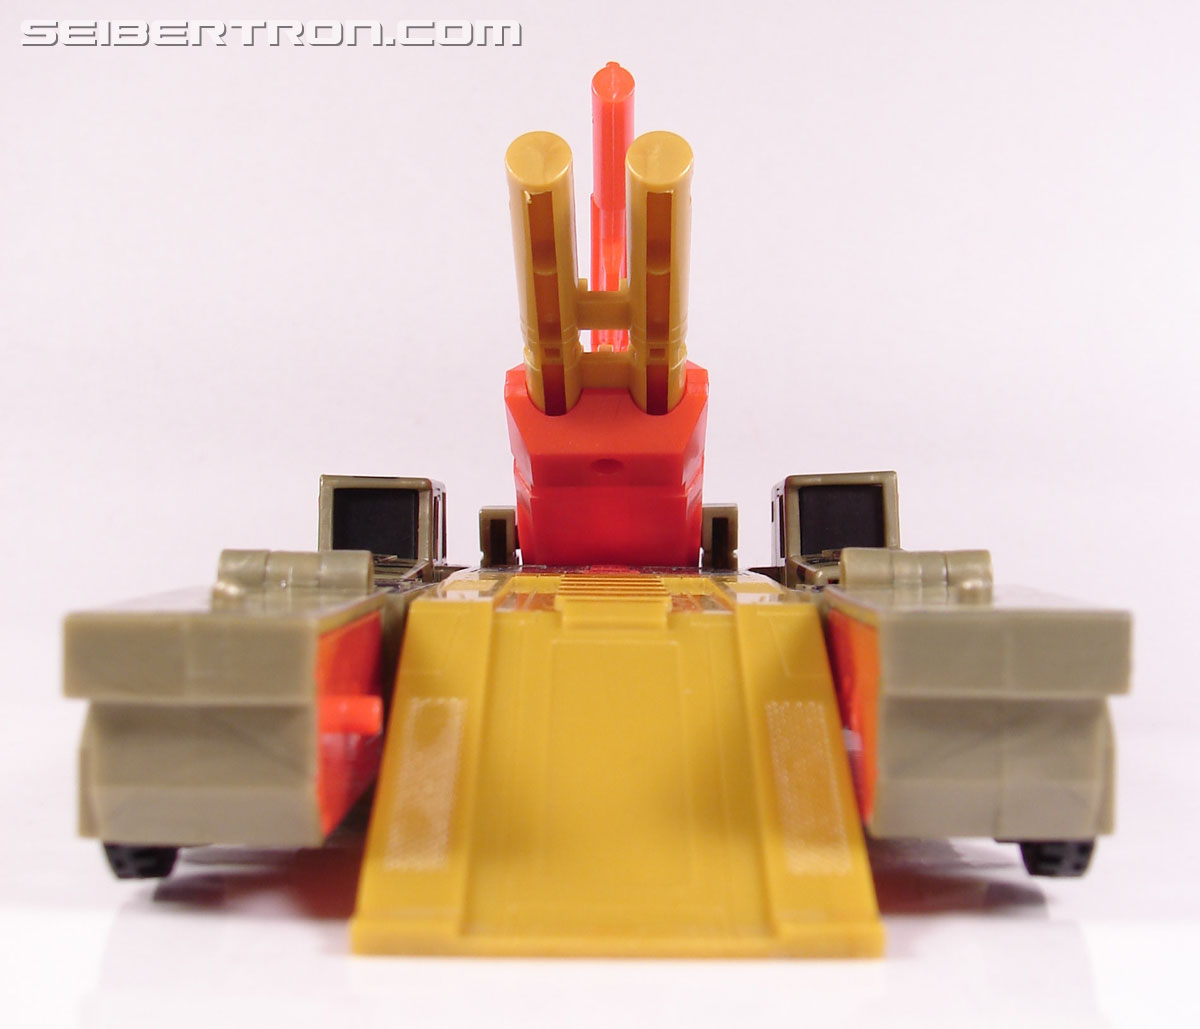 Transformers Robots In Disguise Mega-Octane (Dolrailer) (Image #44 of 108)